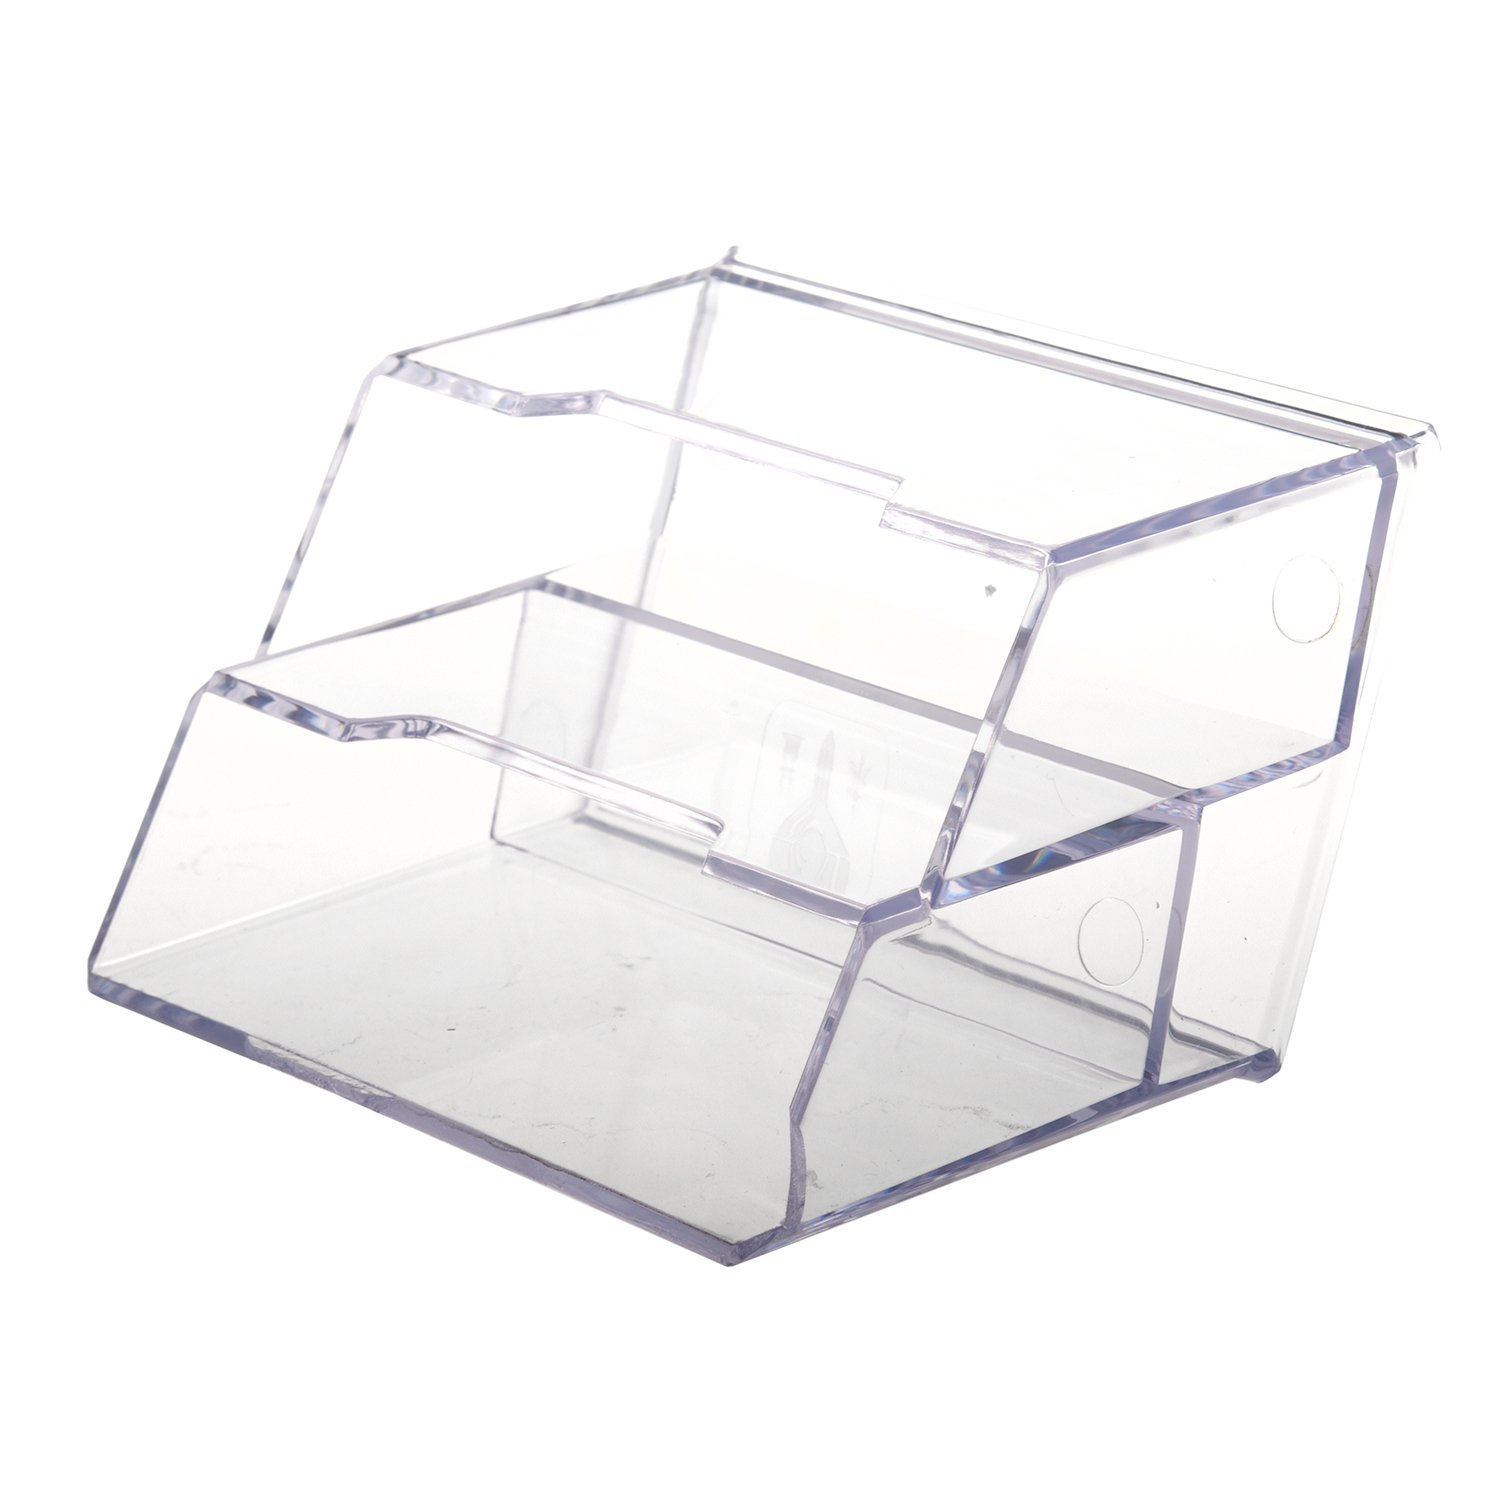 SODIAL Office Business Card Holder Desktop Display Stand 2-Compartment R